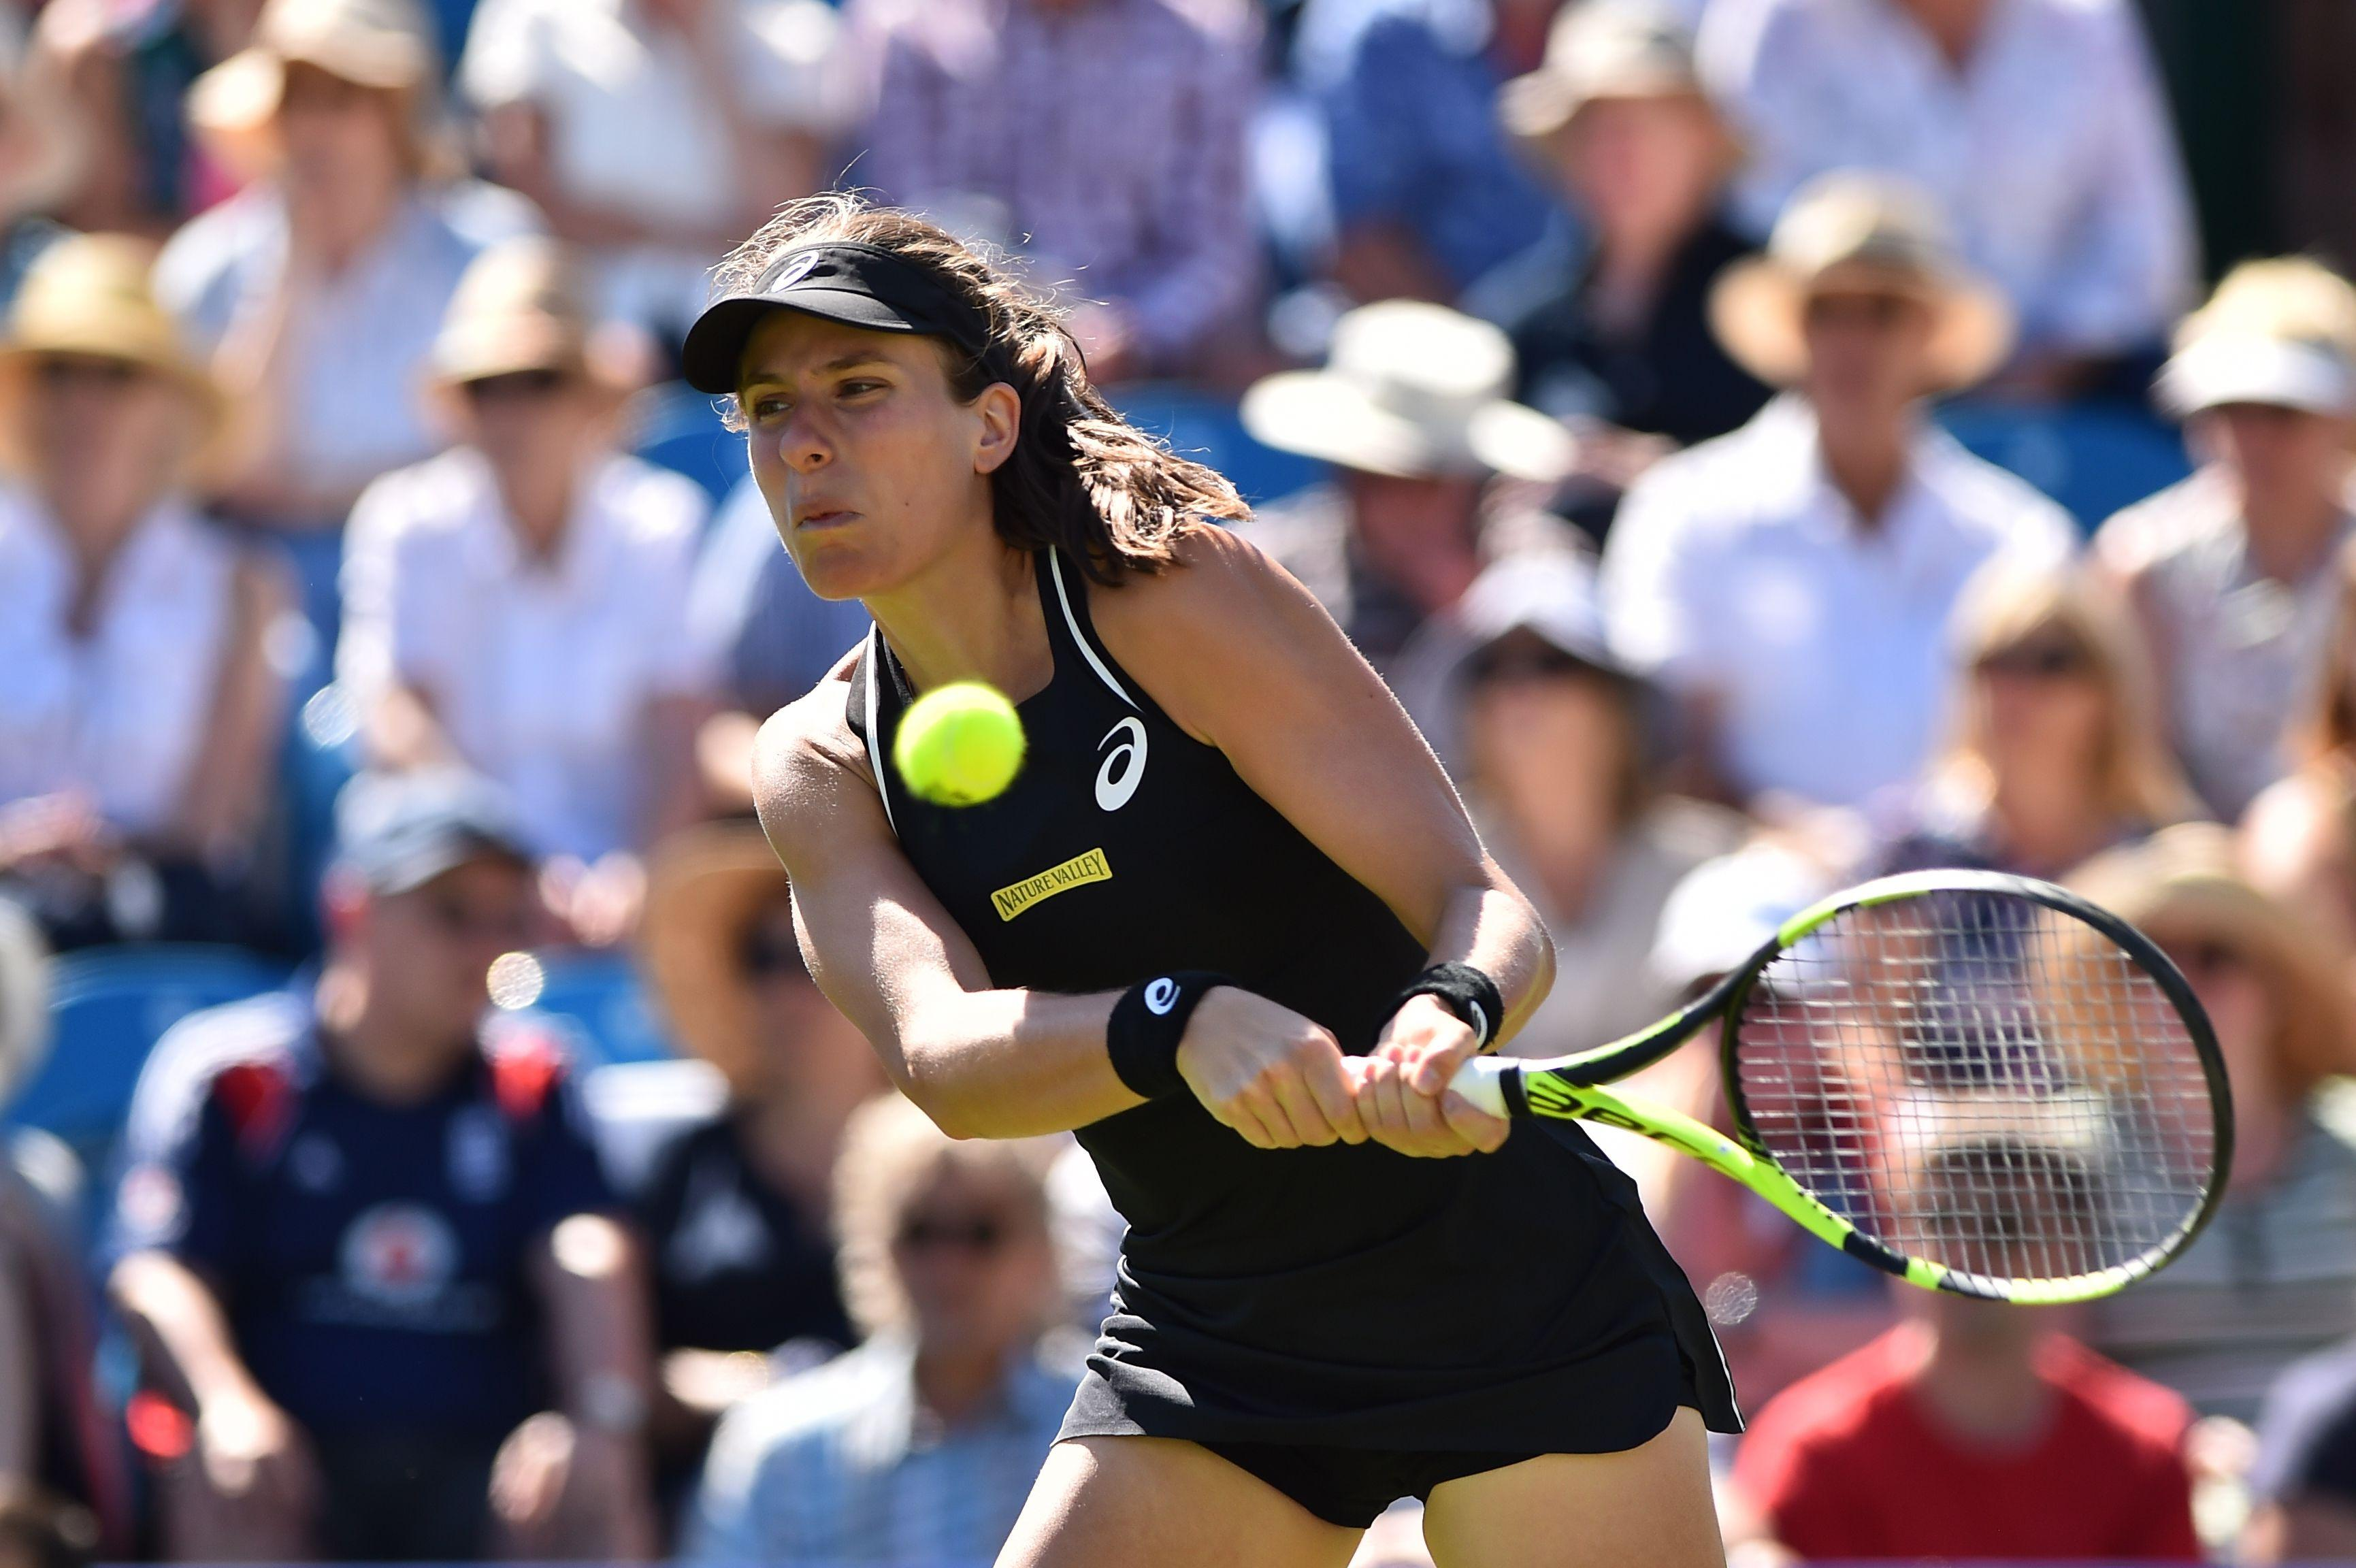 Konta lost to Krunic at the US Open last year but got her revenge in Eastbourne